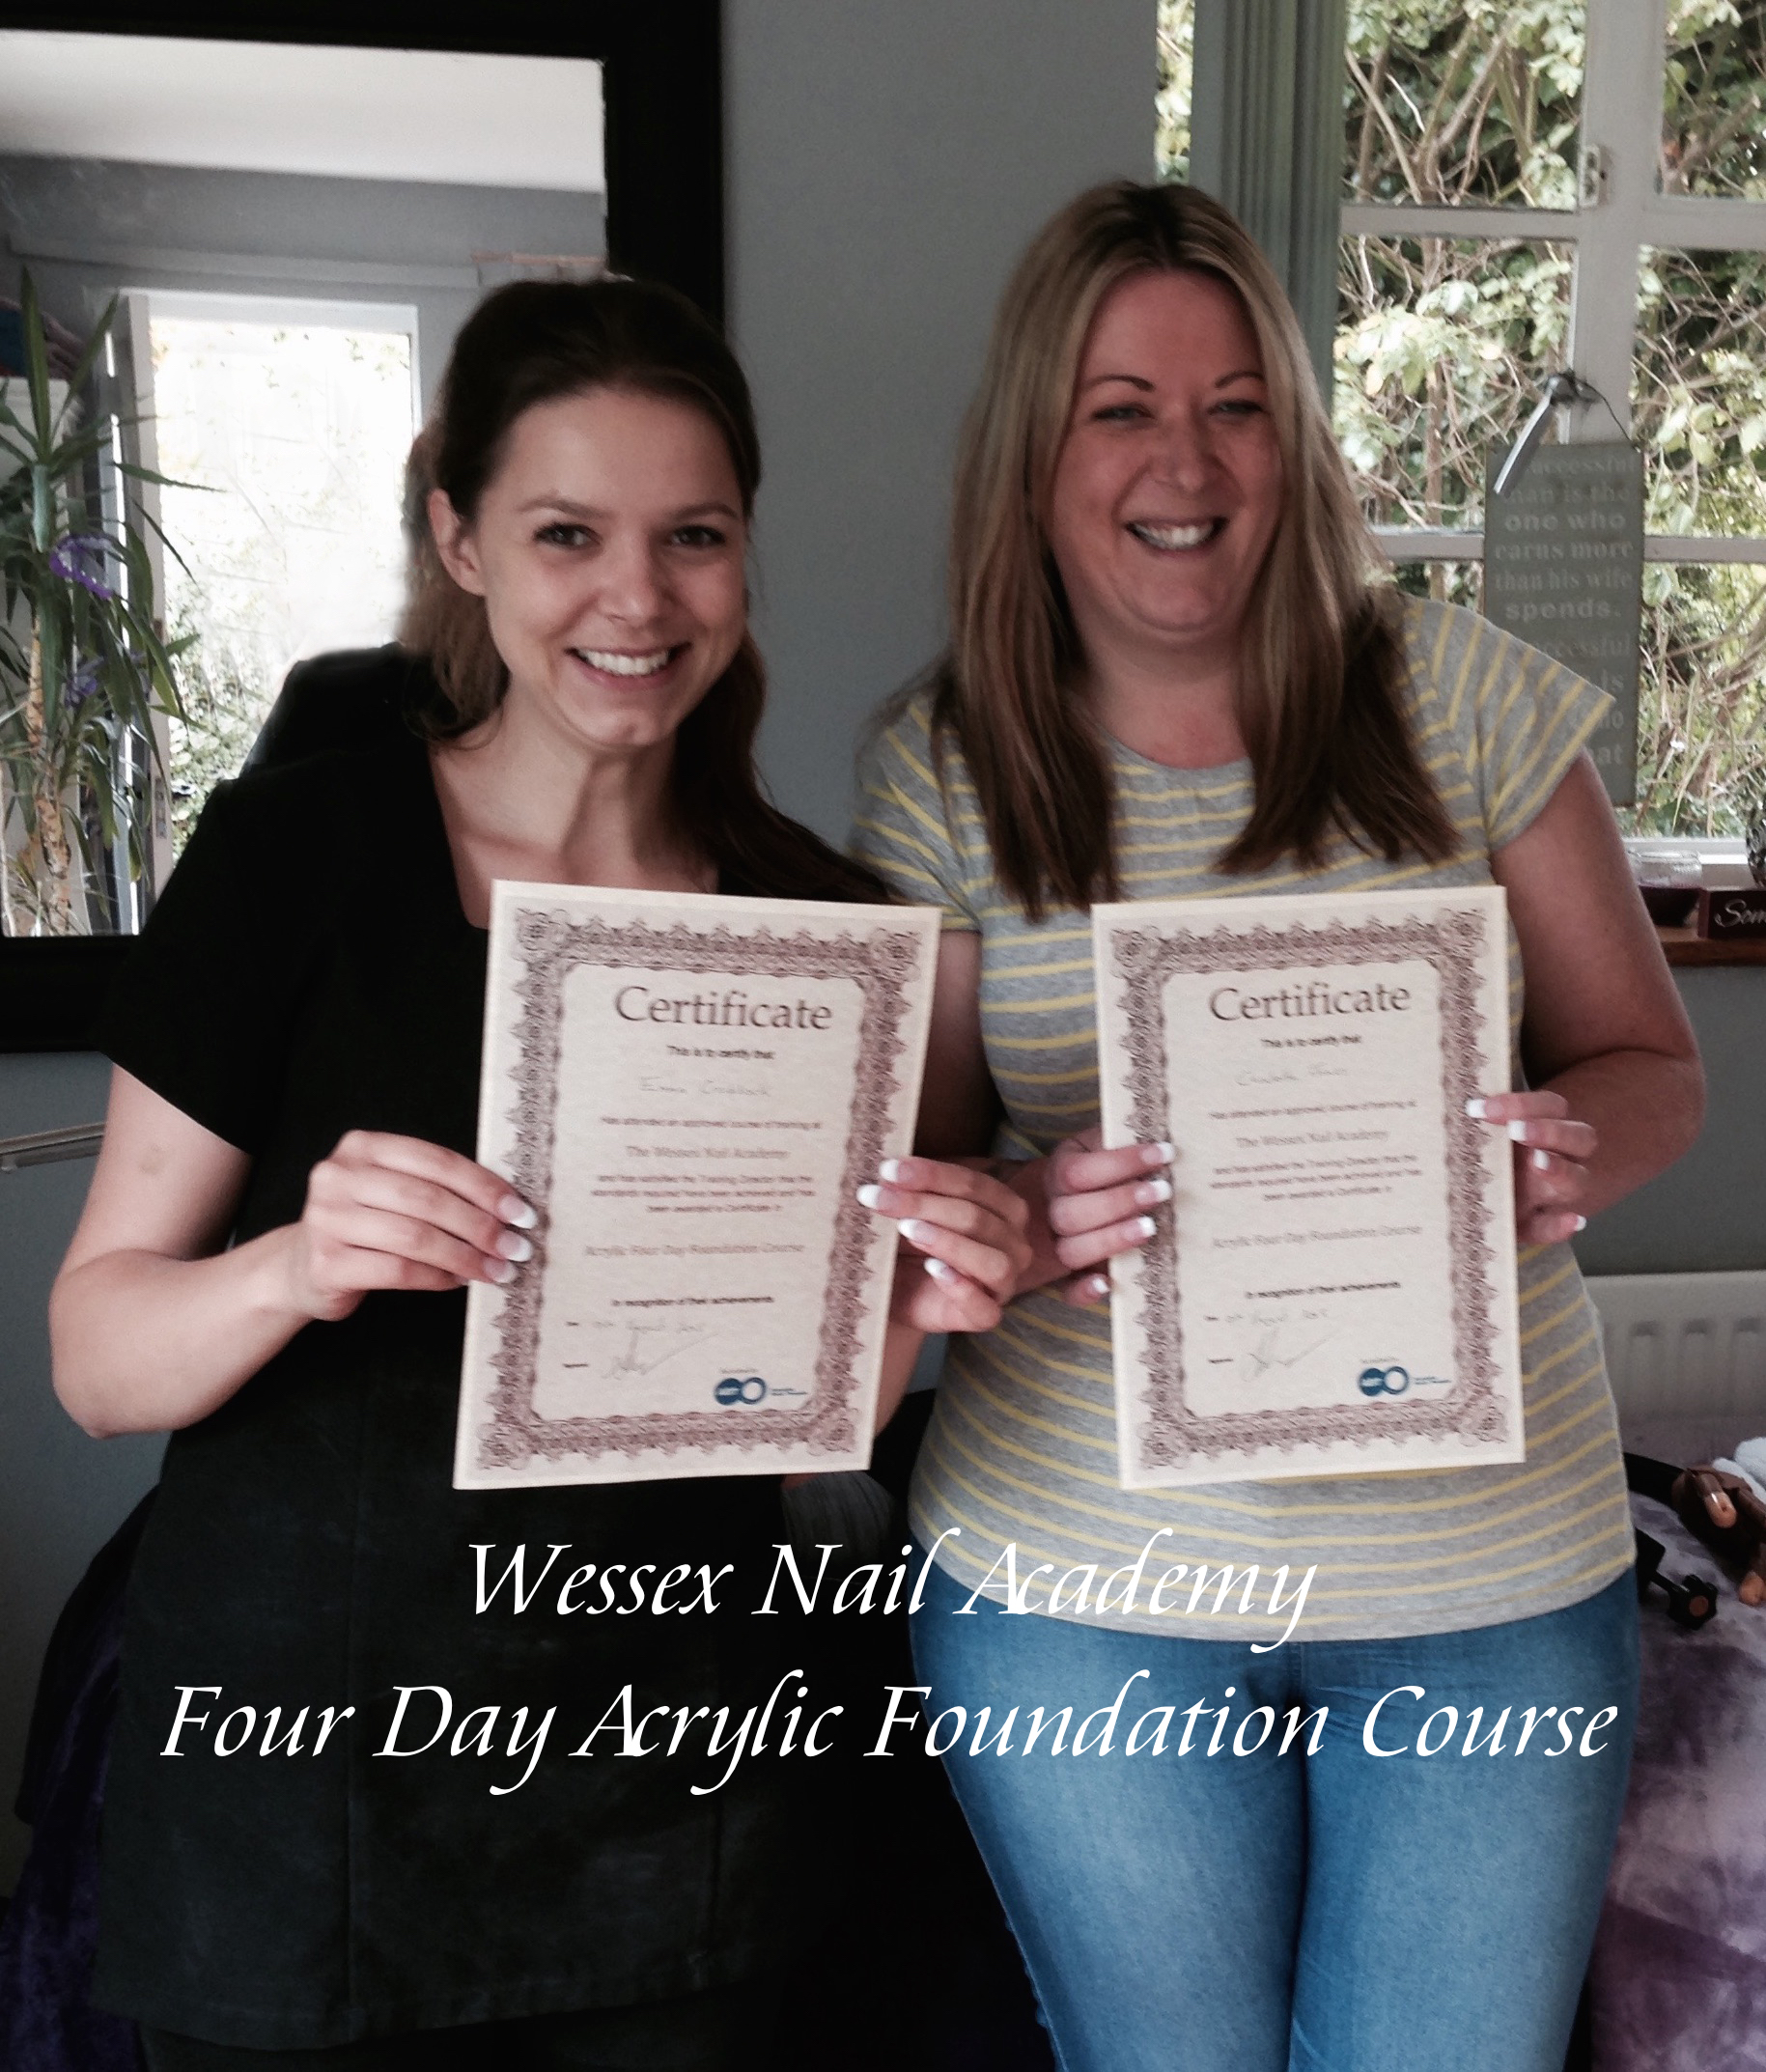 4 Day Acrylic Foundation Course, Nail extension training, nail training course, Wessex Nail Academy Okeford Fitzpaine, Dorset